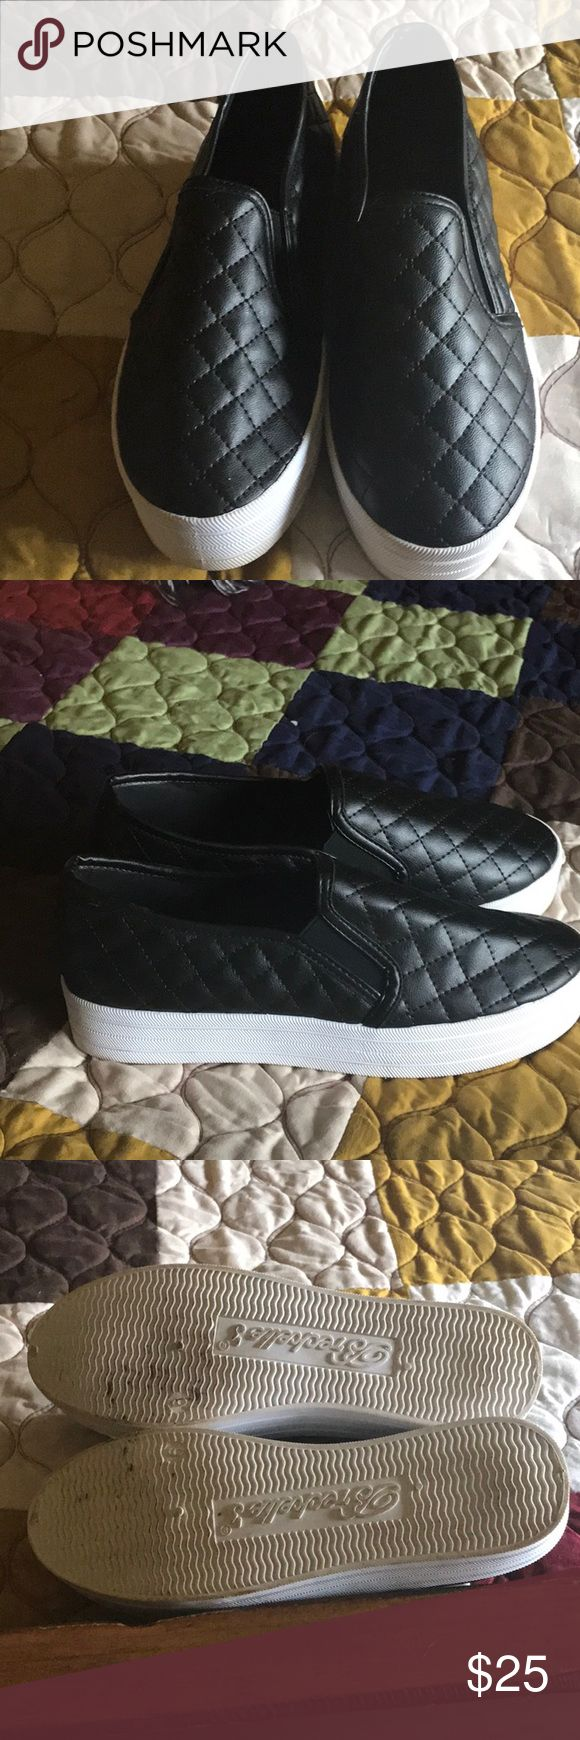 Black quilted tennis shoes Chanel style size 6 Like new, worn once size 6. Black quilted tennies - slip on. Shoes